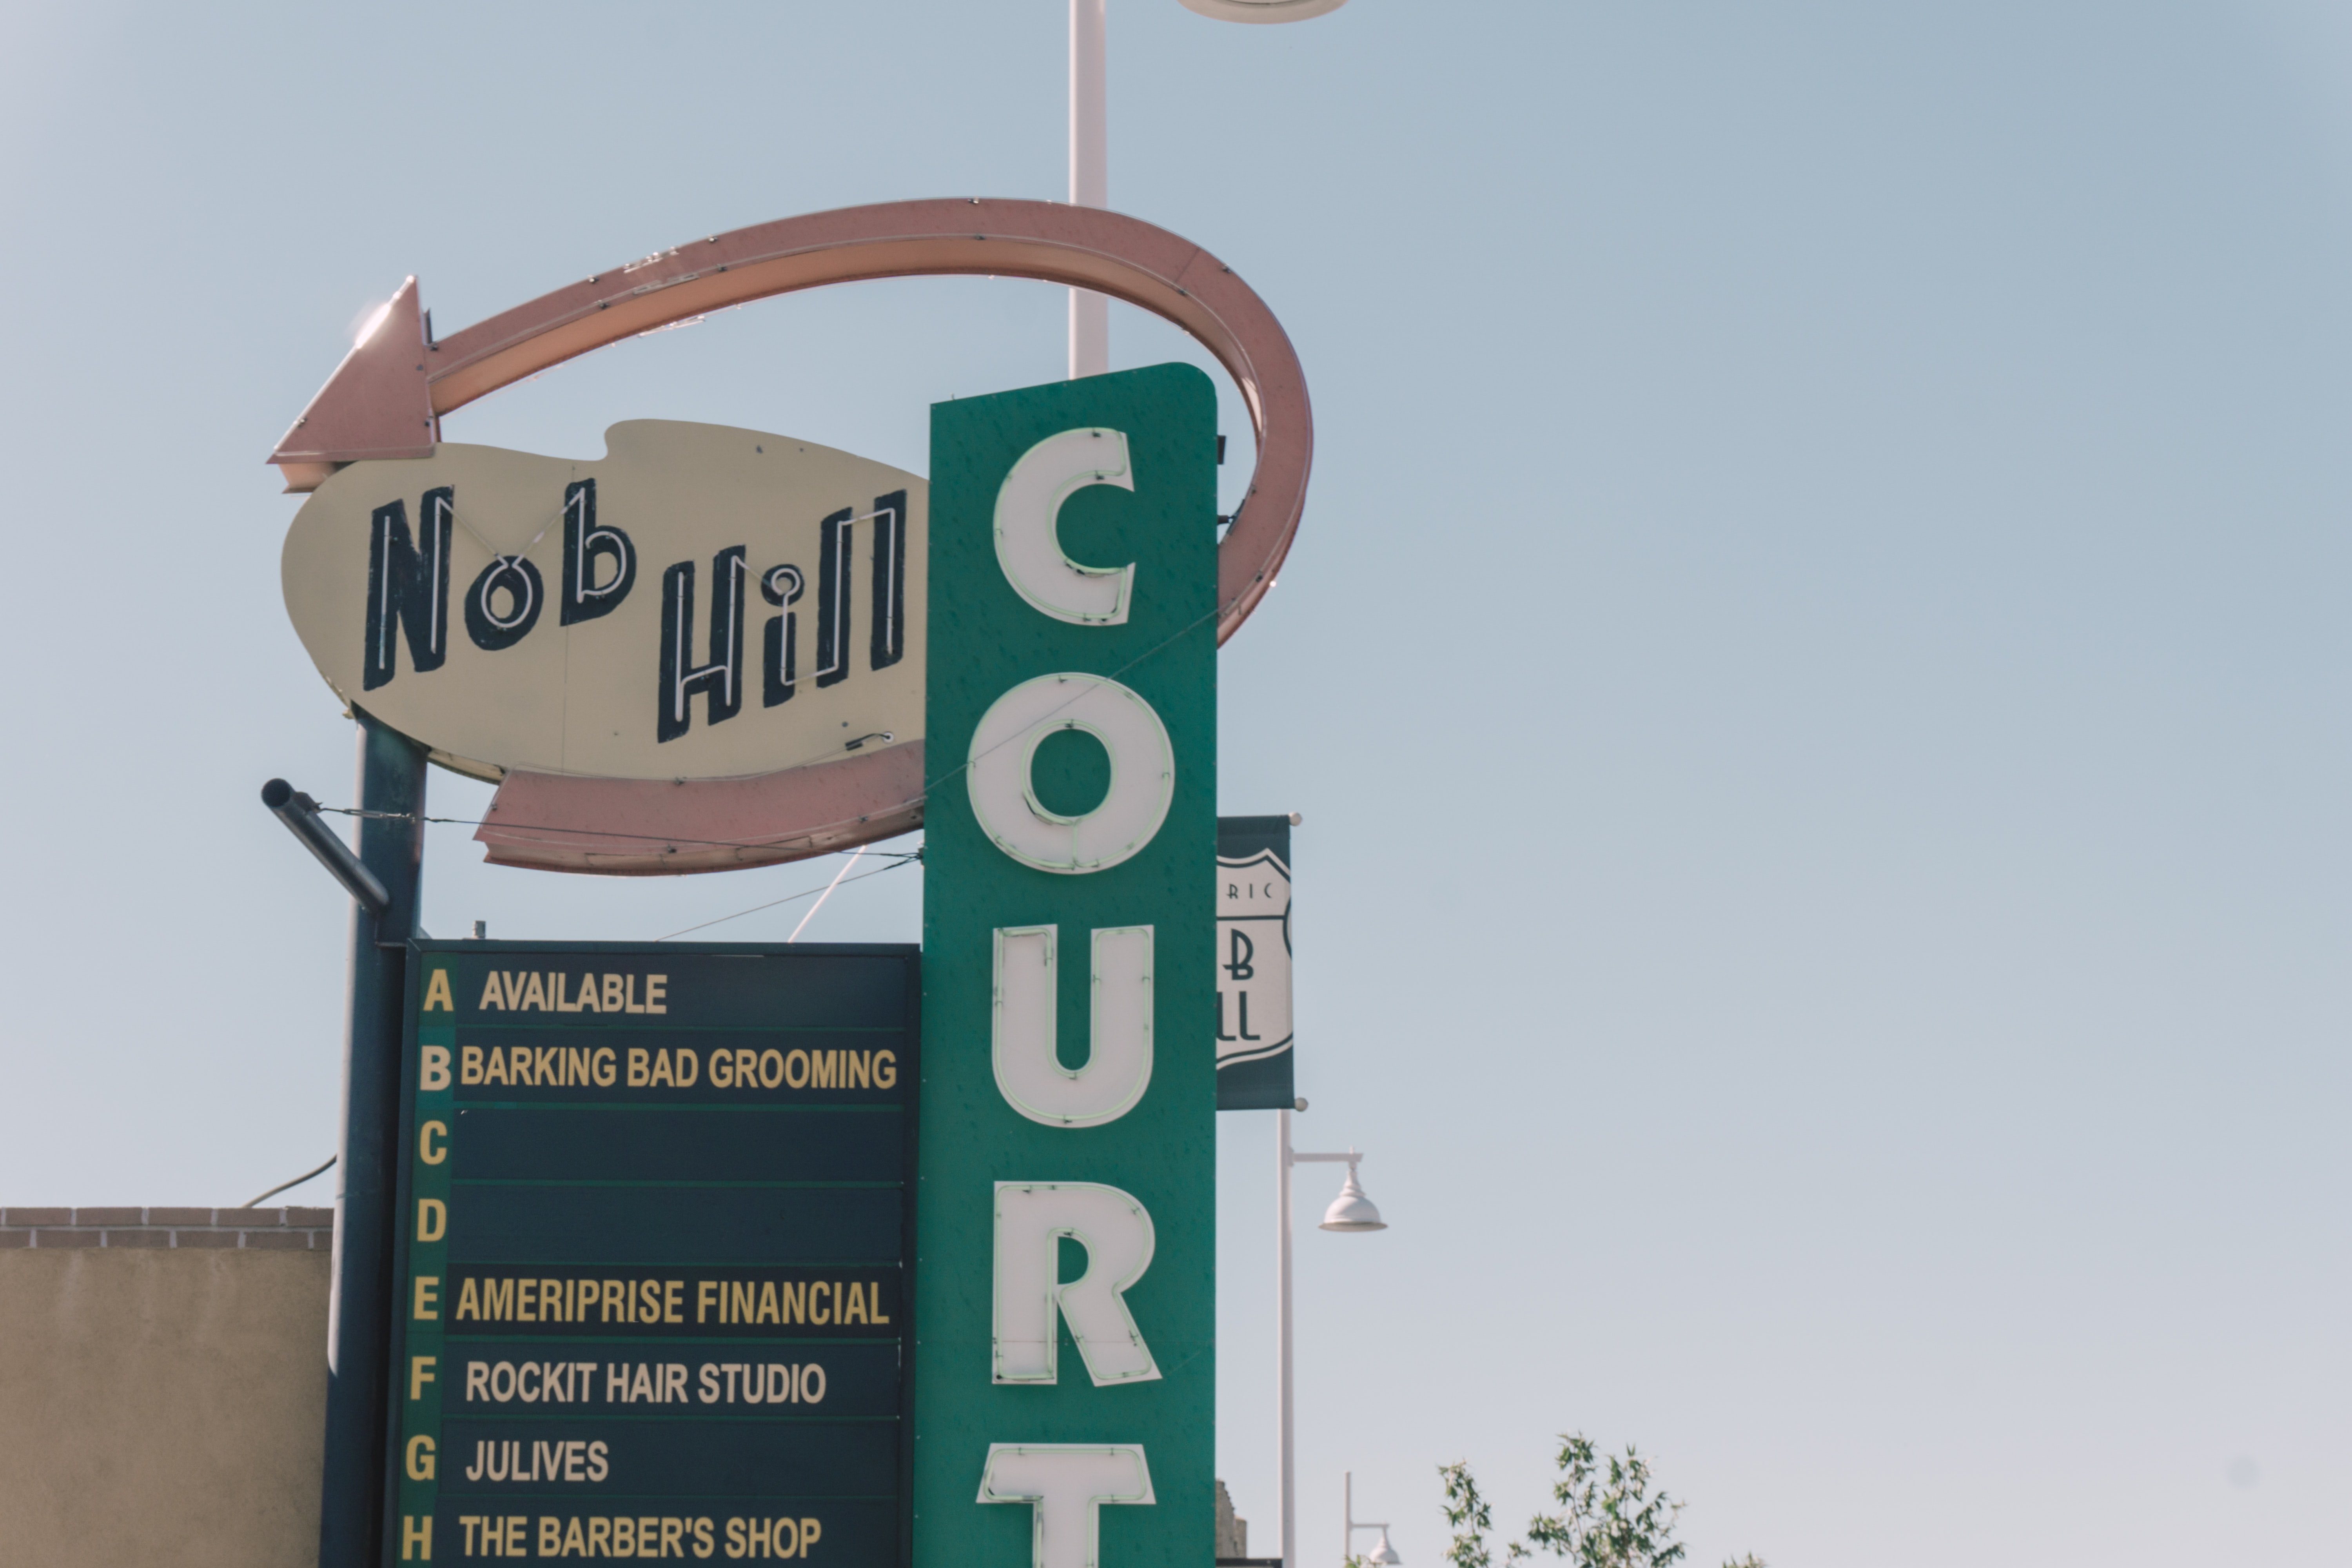 nob hill signage at daytime